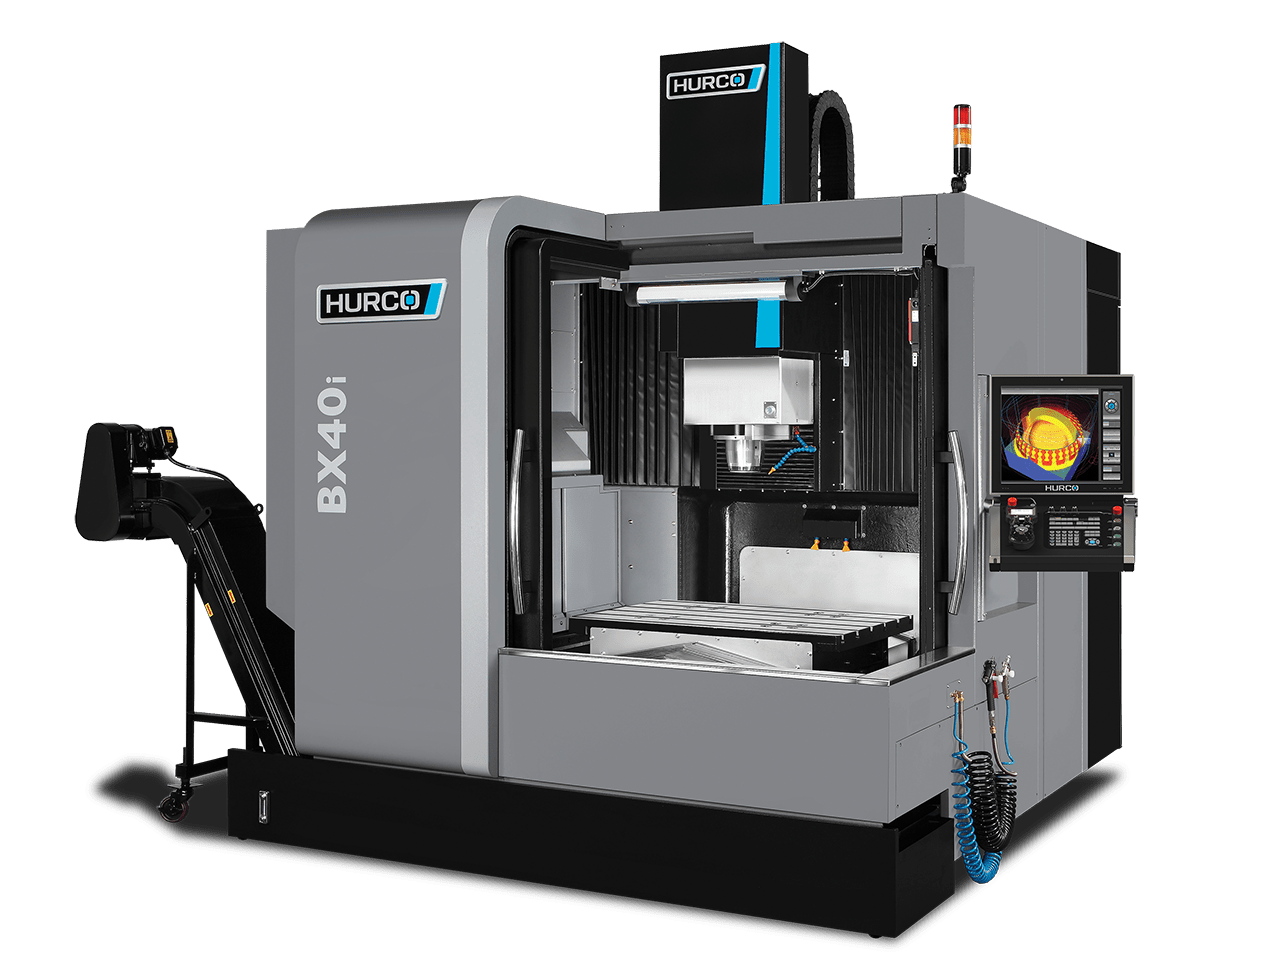 hight resolution of double column machining center bx series the hurco bx series cnc